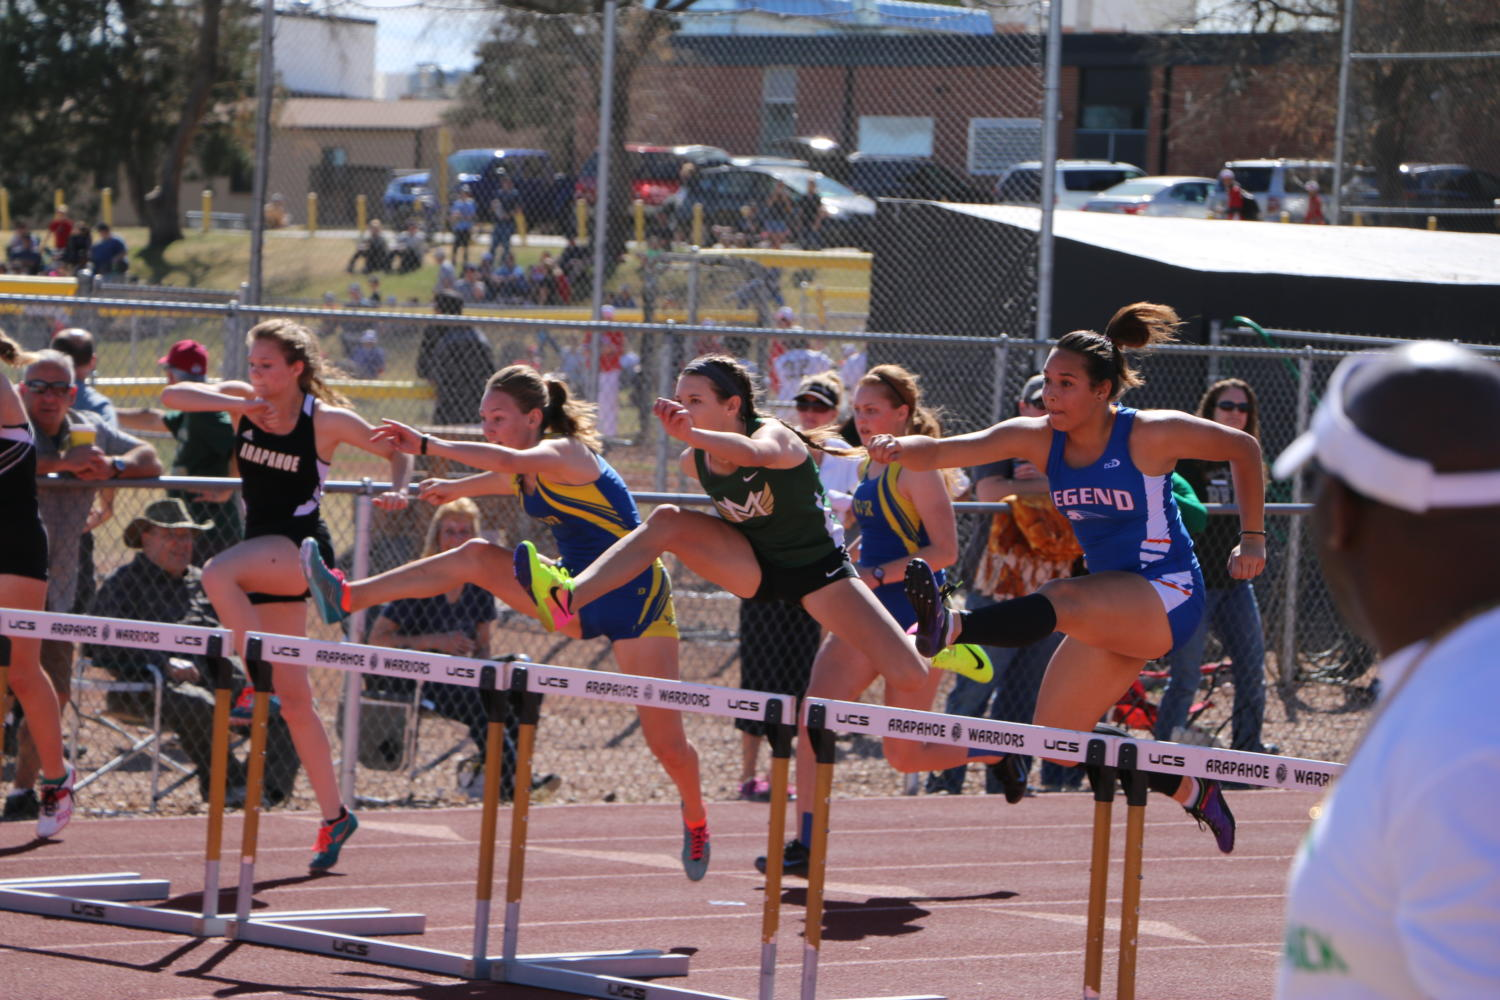 Lindsey+Roberts+running+the+300+meter+hurdles+at+a+track+meet.+courtesy+of+Scott+Chamberlin